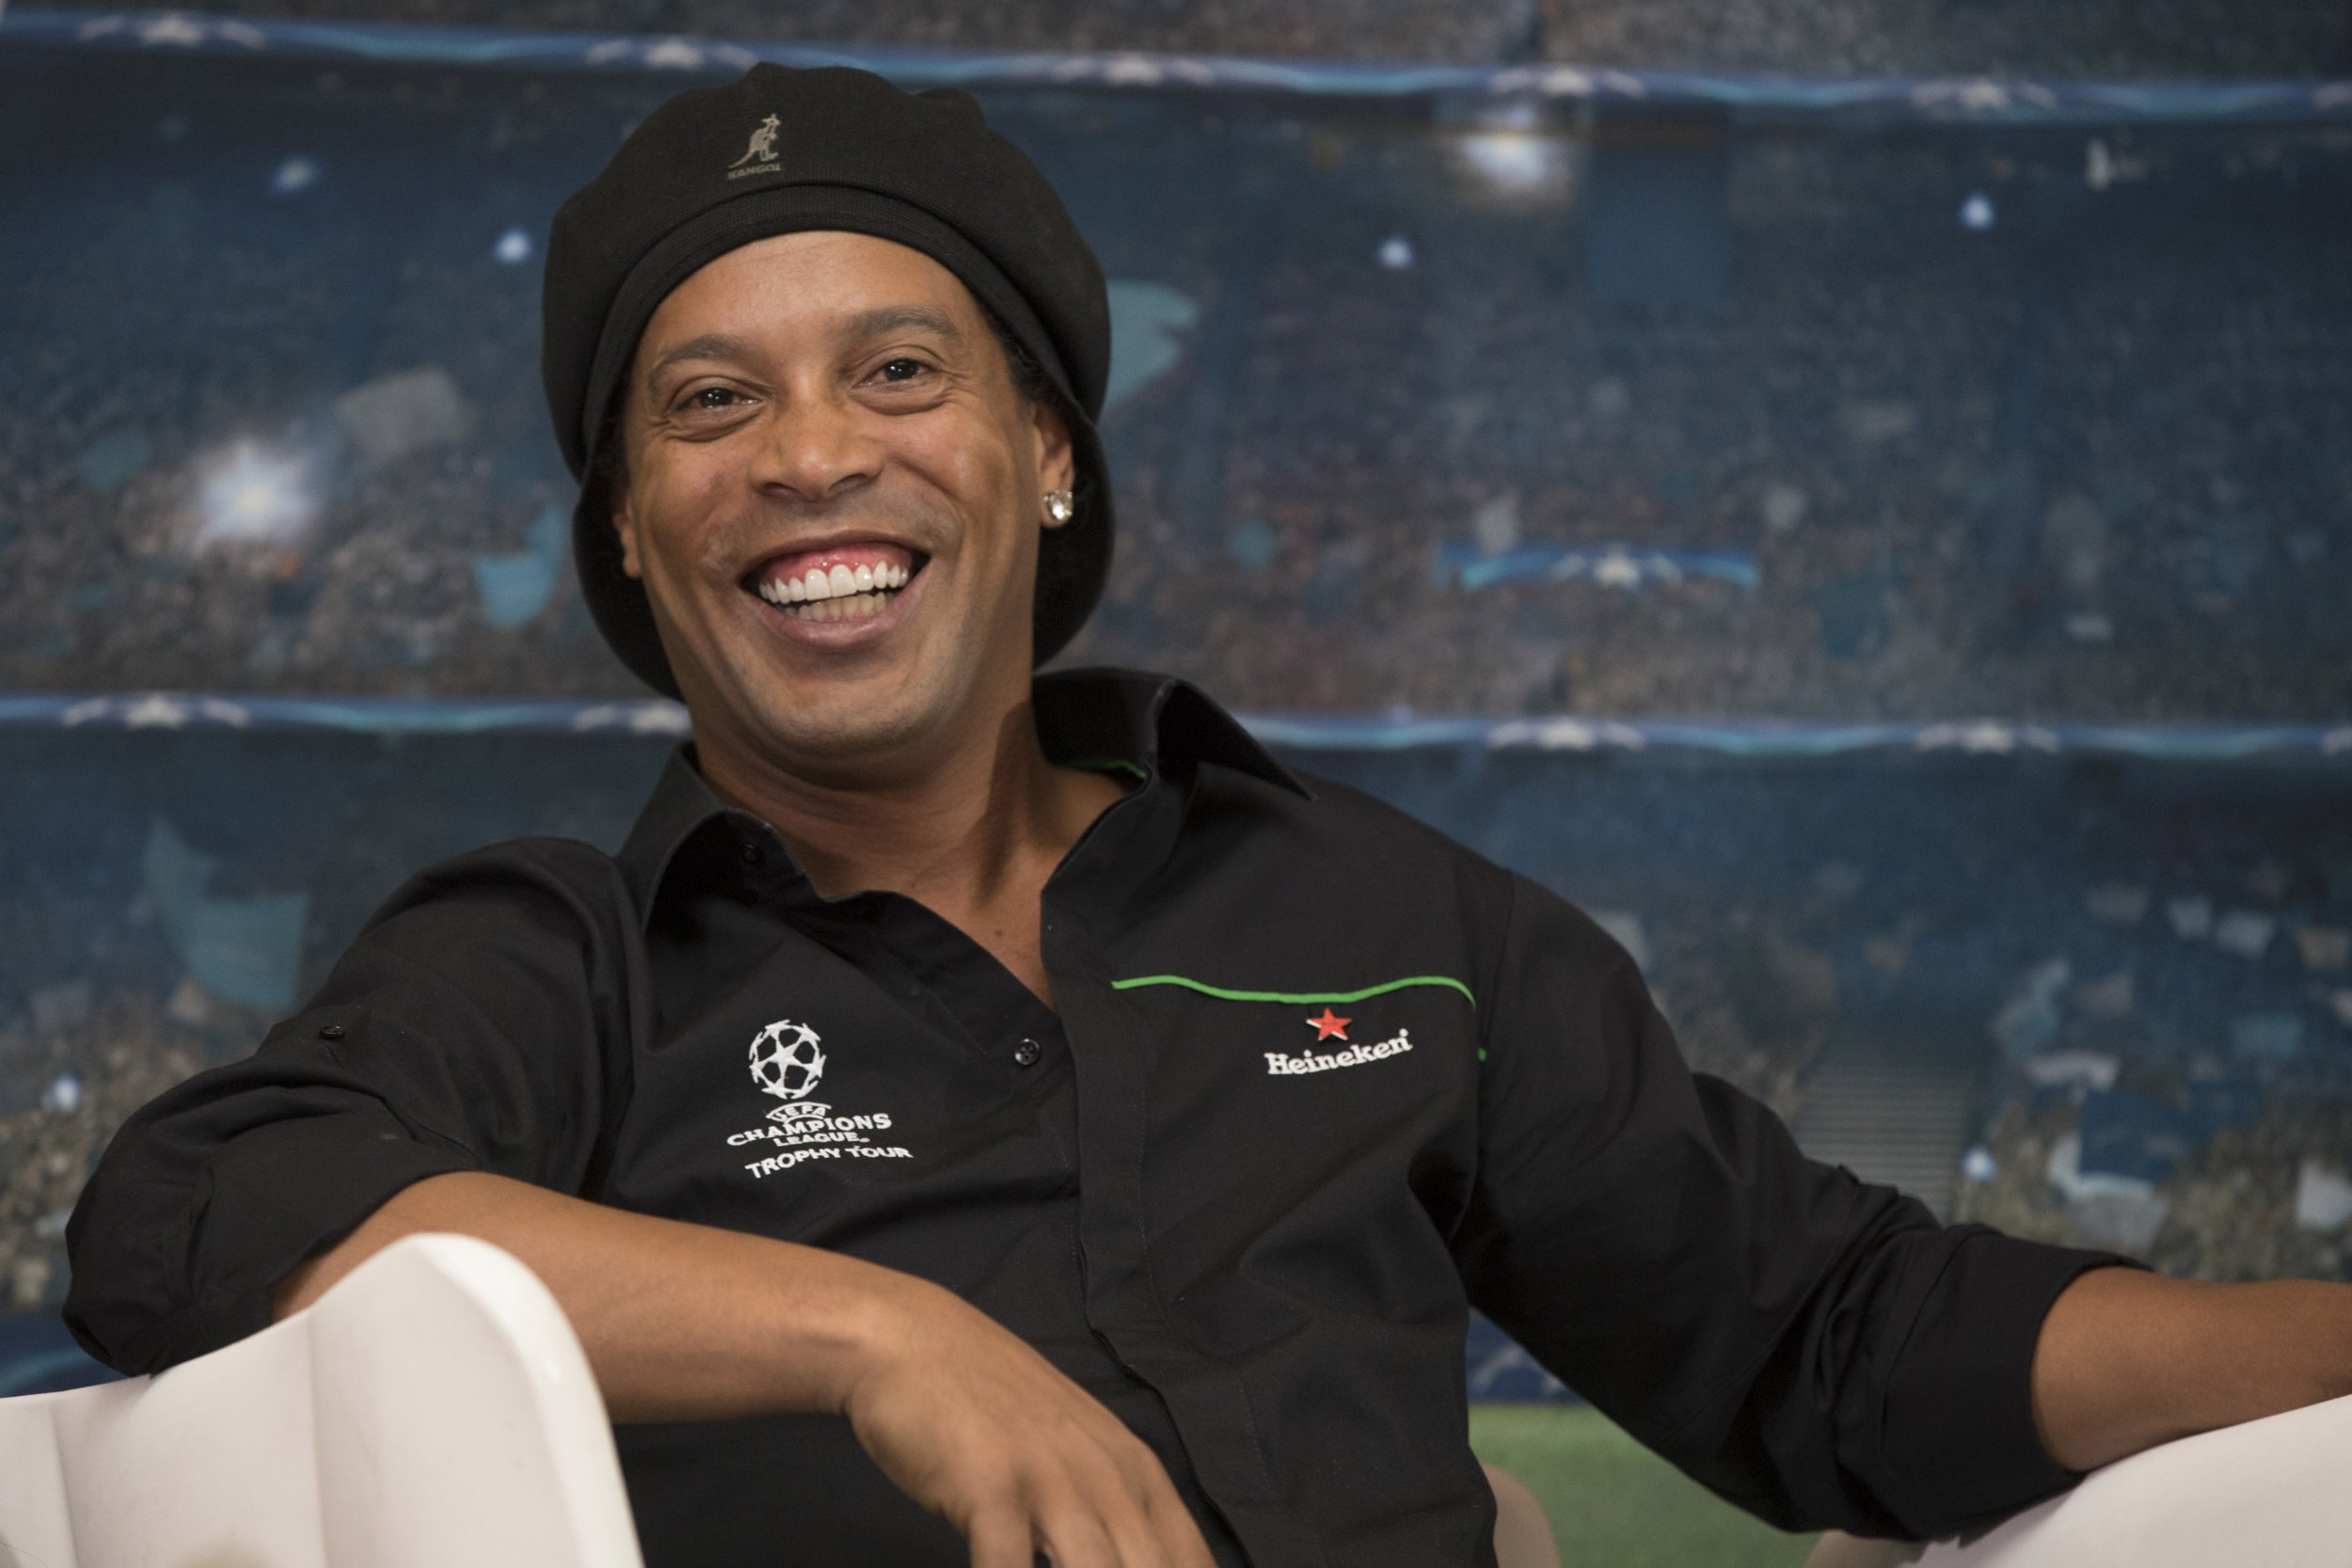 ADDIS ABABA - APRIL 14: Ronaldinho, Heineken Ambassador, is pictured during a press briefing with the UEFA trophy during the UEFA Champions League Trophy Tour Presented by Heineken at the Hilton Hotel on 14 April 2018 in Addis Ababa, Ethiopia. (Photo by Getty Images)